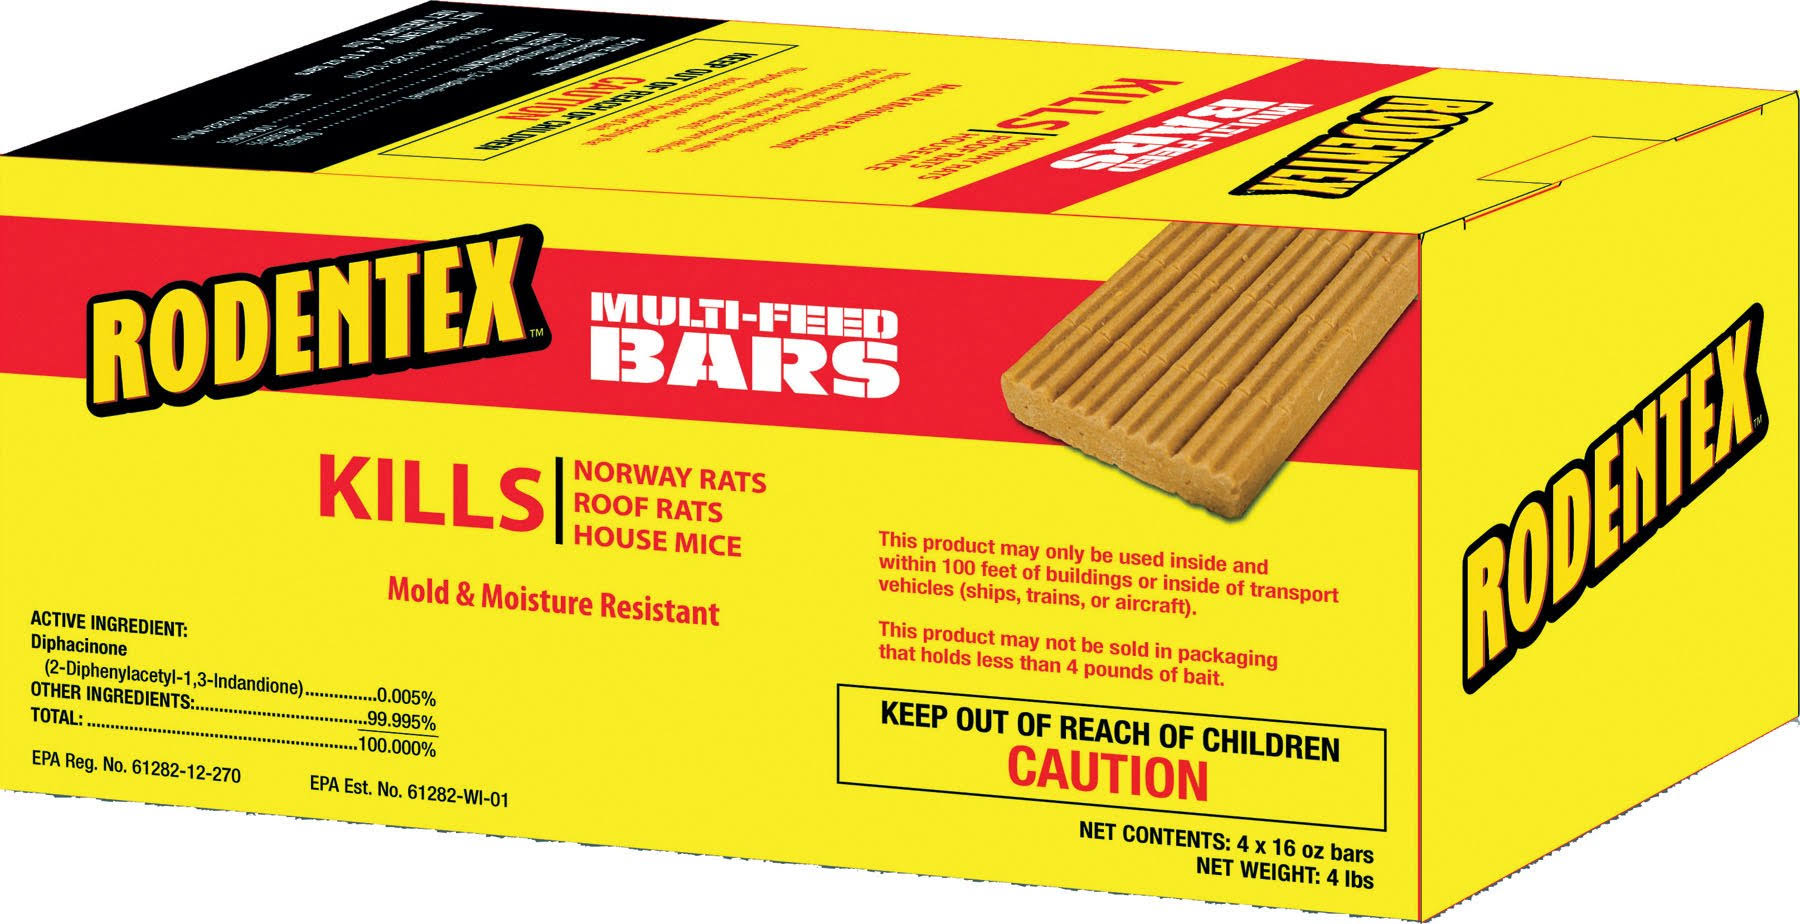 Rodentex Multi-Feed Control Bars - 16oz, 4pcs